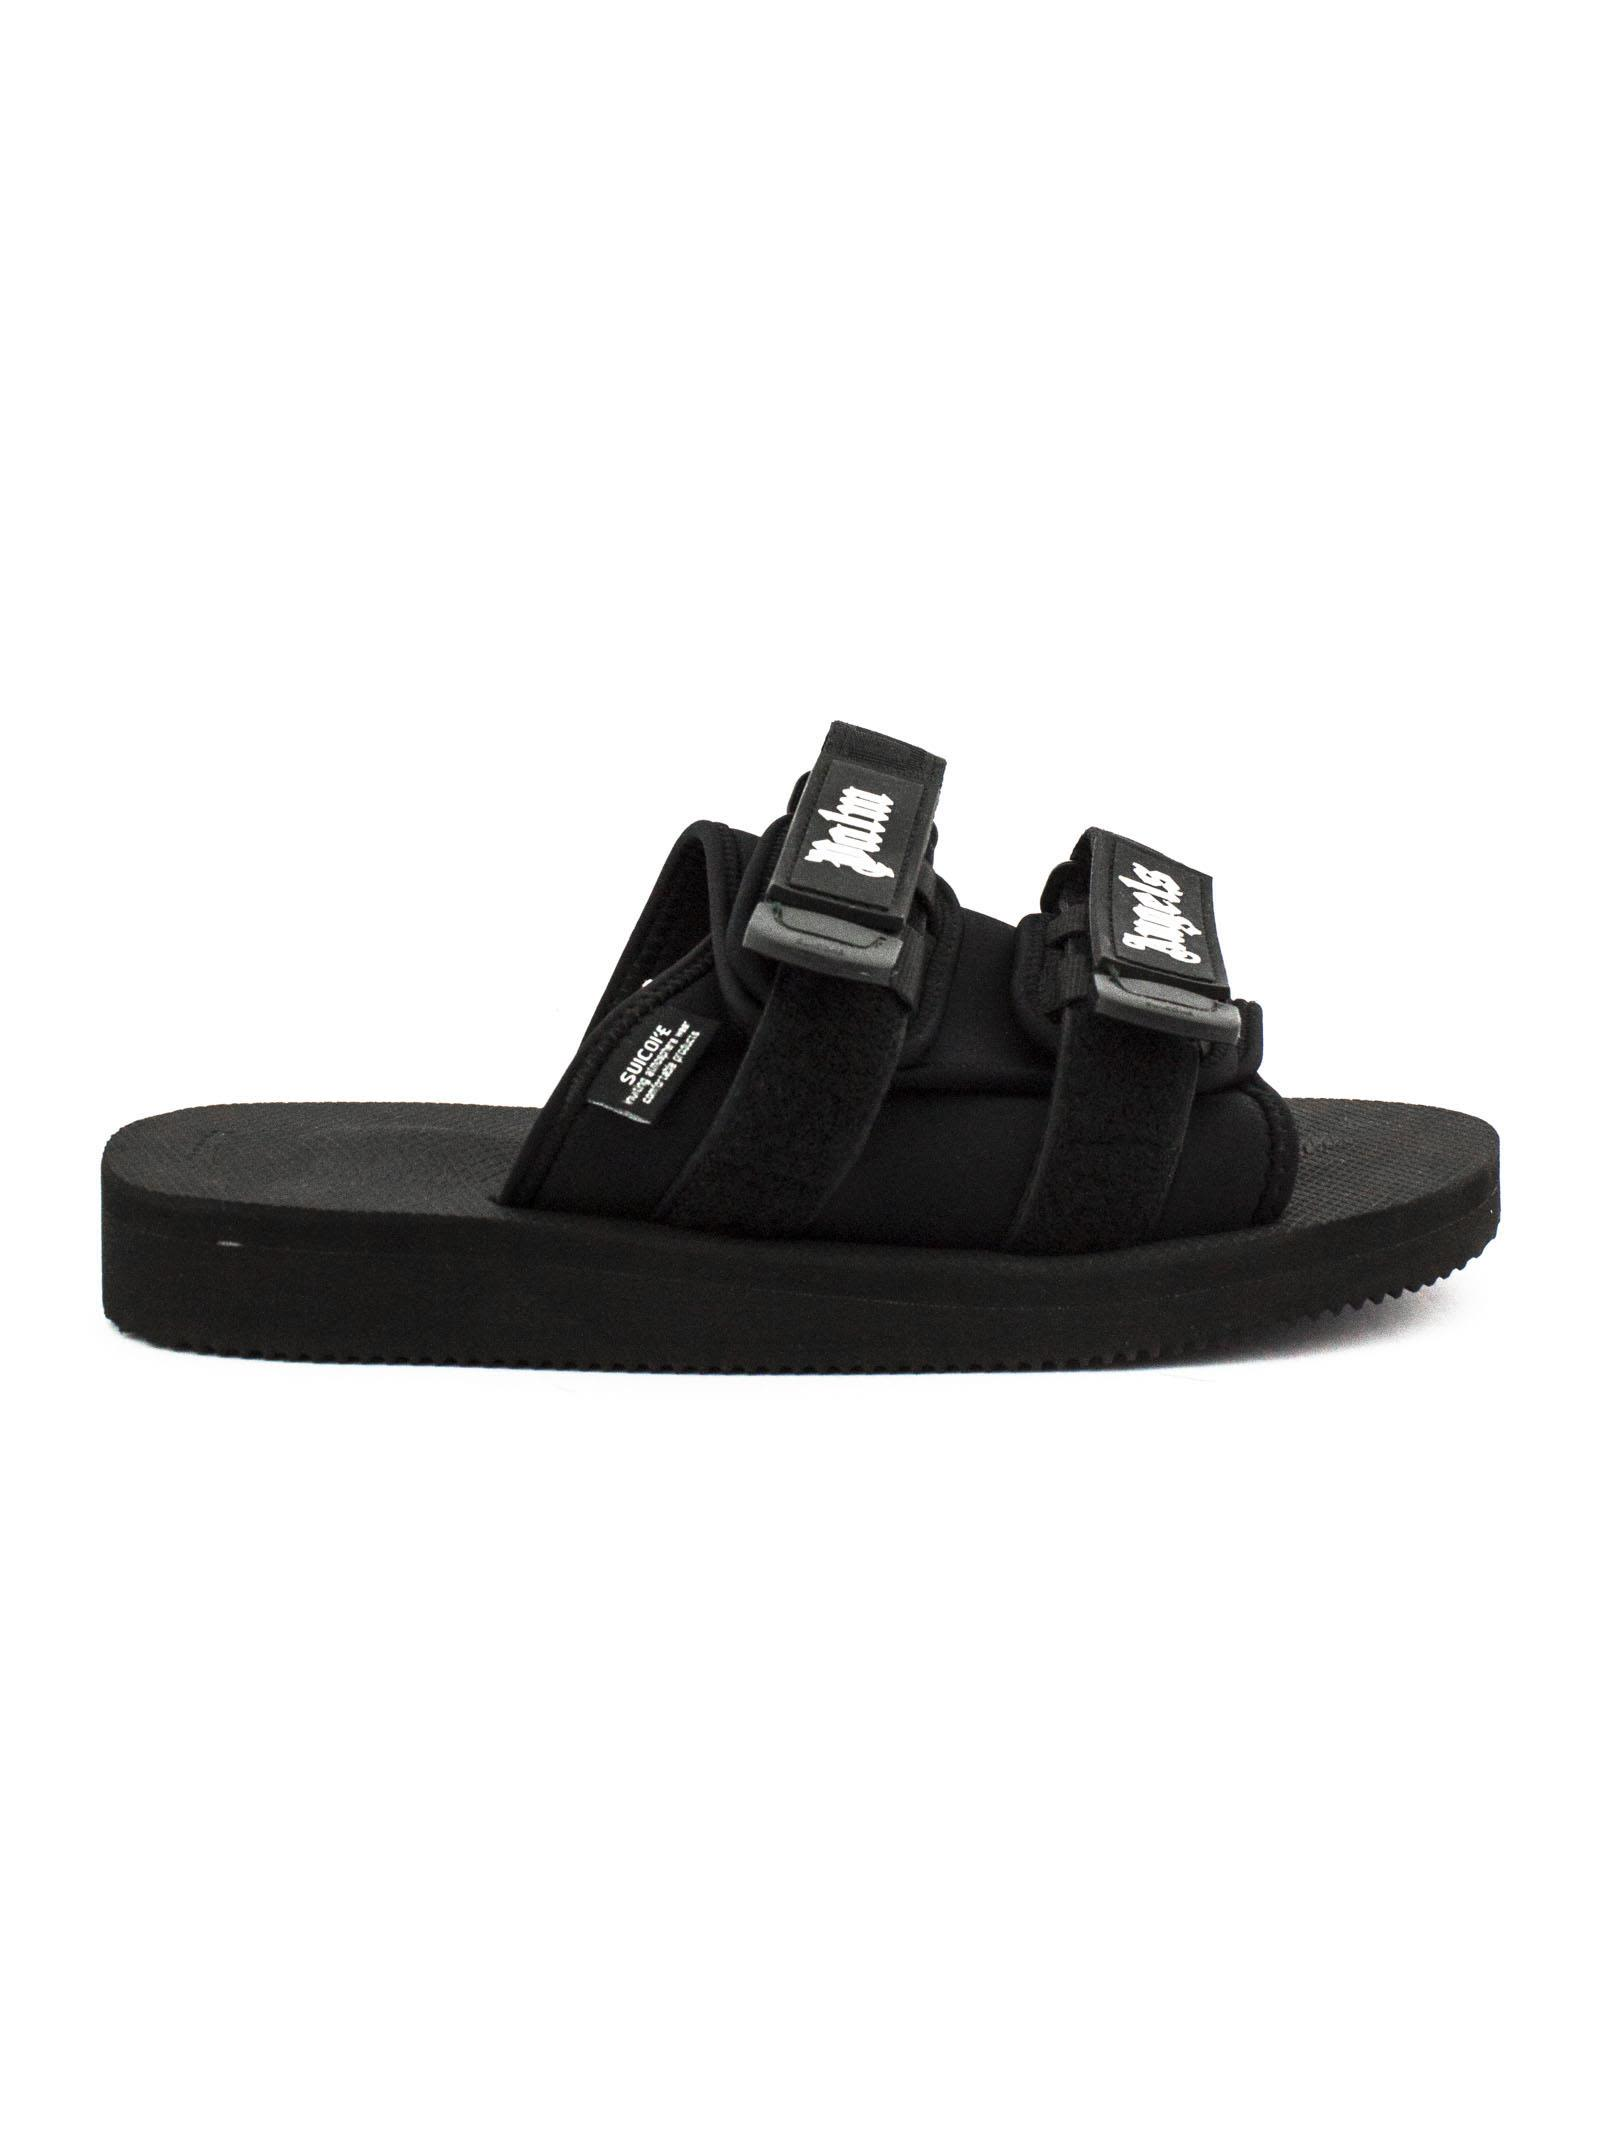 2776845c31dd Palm Angels Black Suicoke Edition Nylon Slides